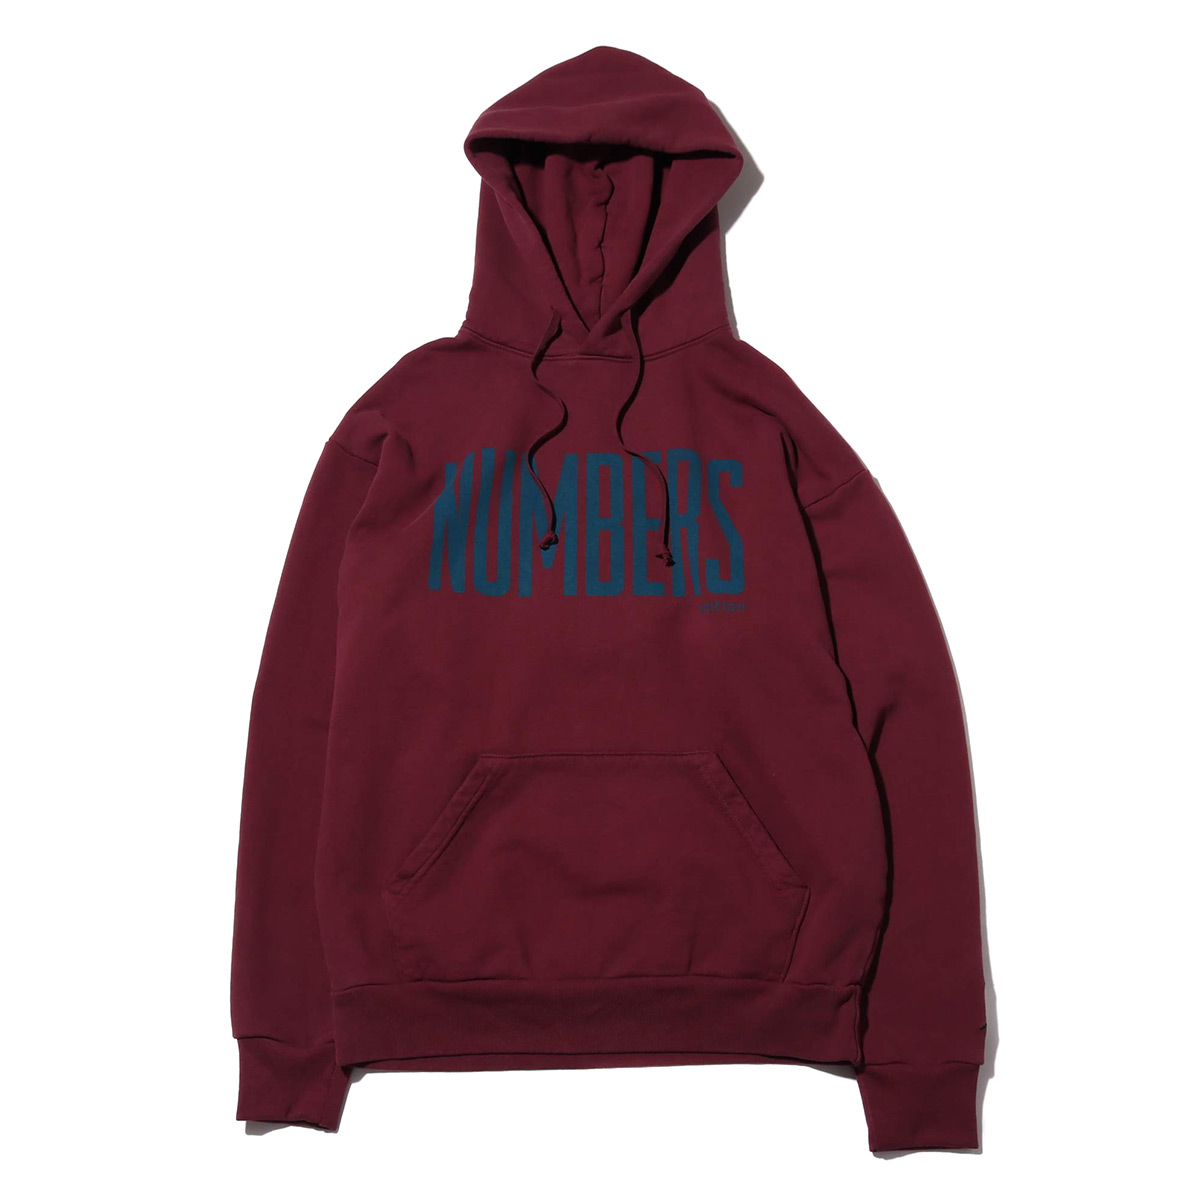 Numbers Edition UPRIGHT - FLEECE HOODIE(PORT)【メンズ】【パーカー】【sale0123】【30】【18FW-I】